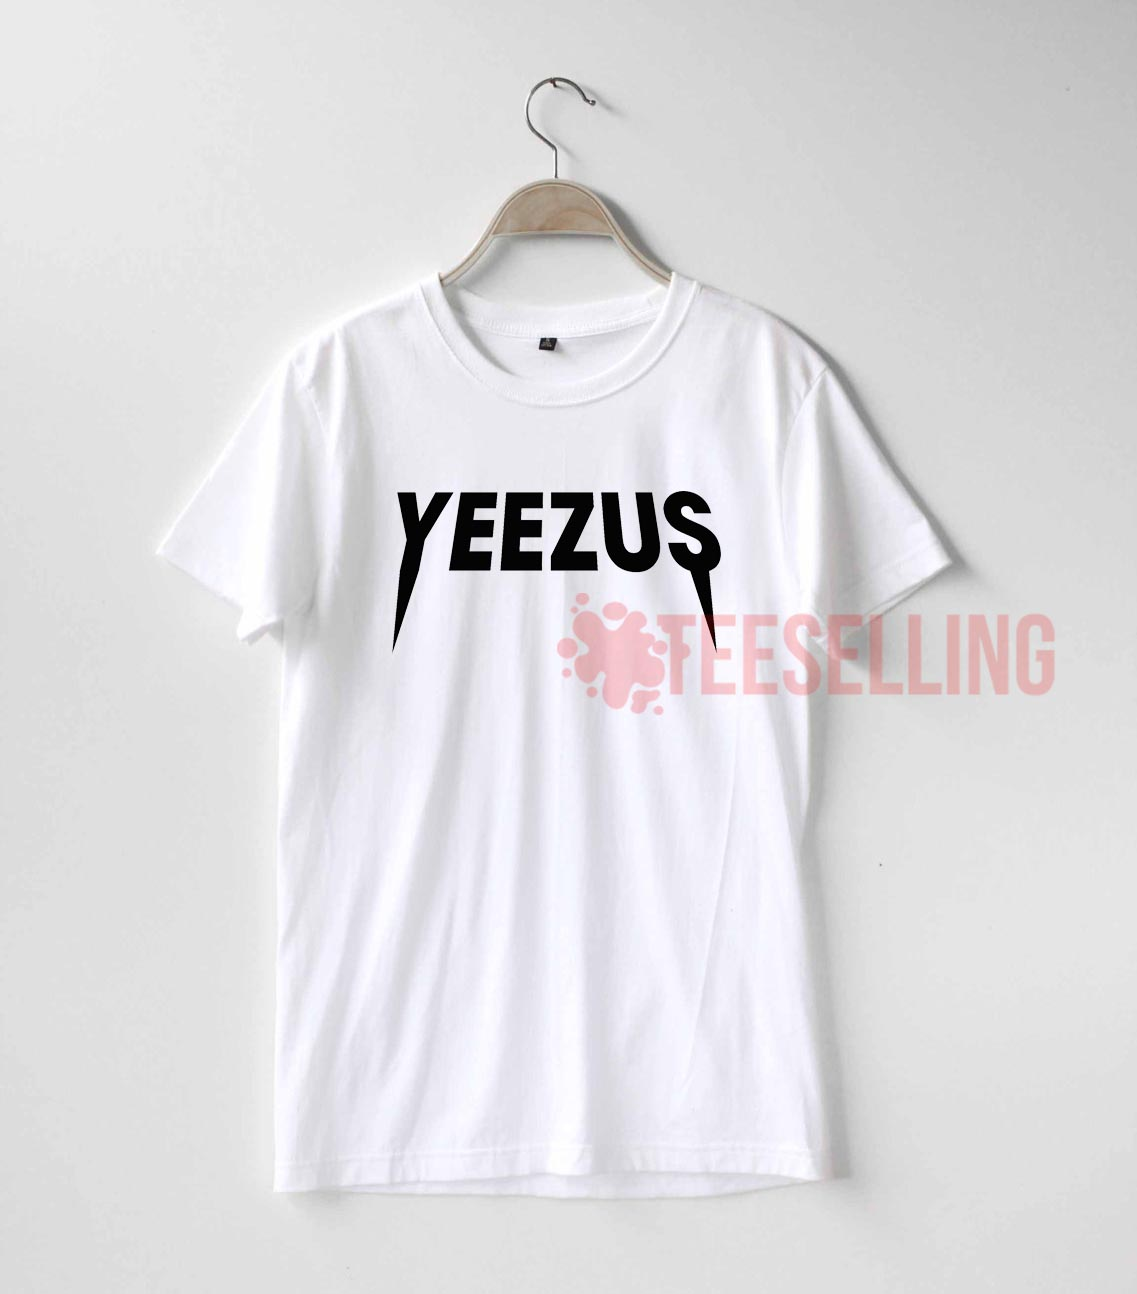 4002db01c Yeezus logo T shirt Adult Unisex For men and women Size S 3XL